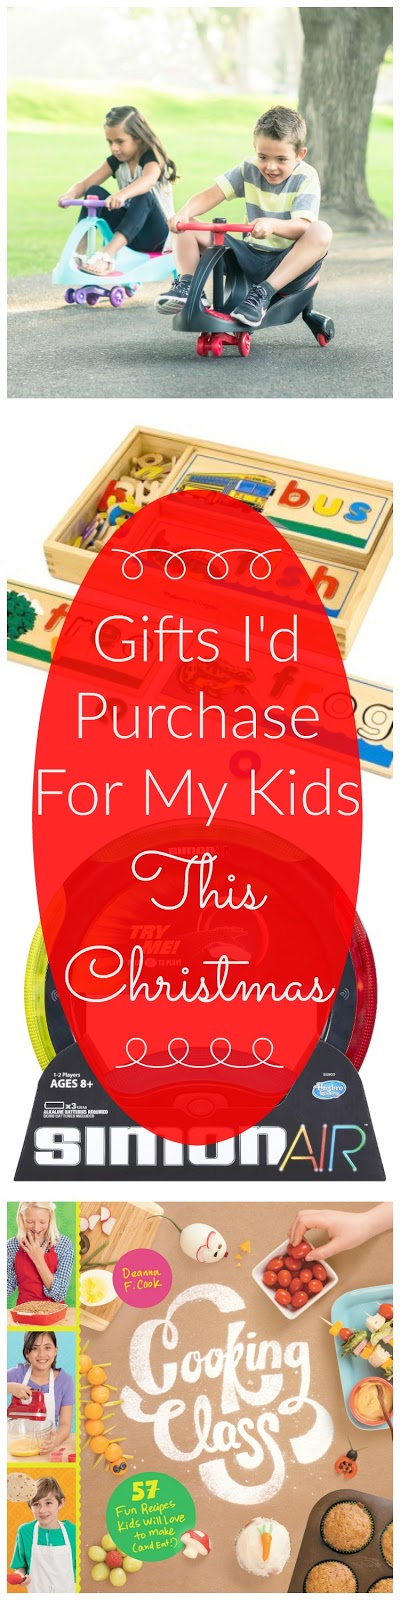 Gifts I'd Purchase For My Kids This Christmas.  My Top 10 List! (sweetandsavoryfood.com)